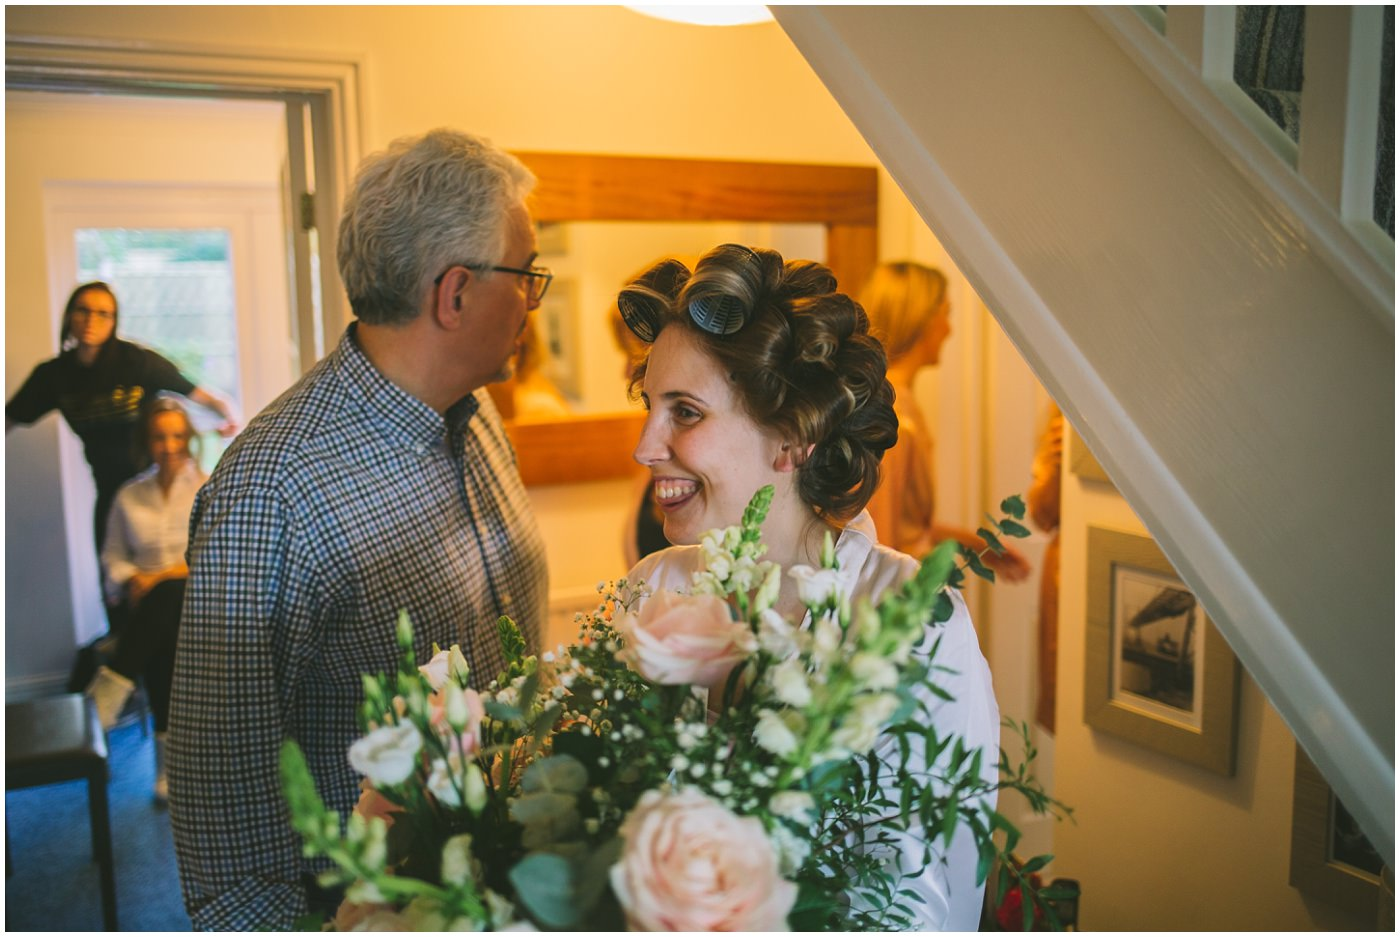 Bride receives a bunch of flowers on the morning of her wedding